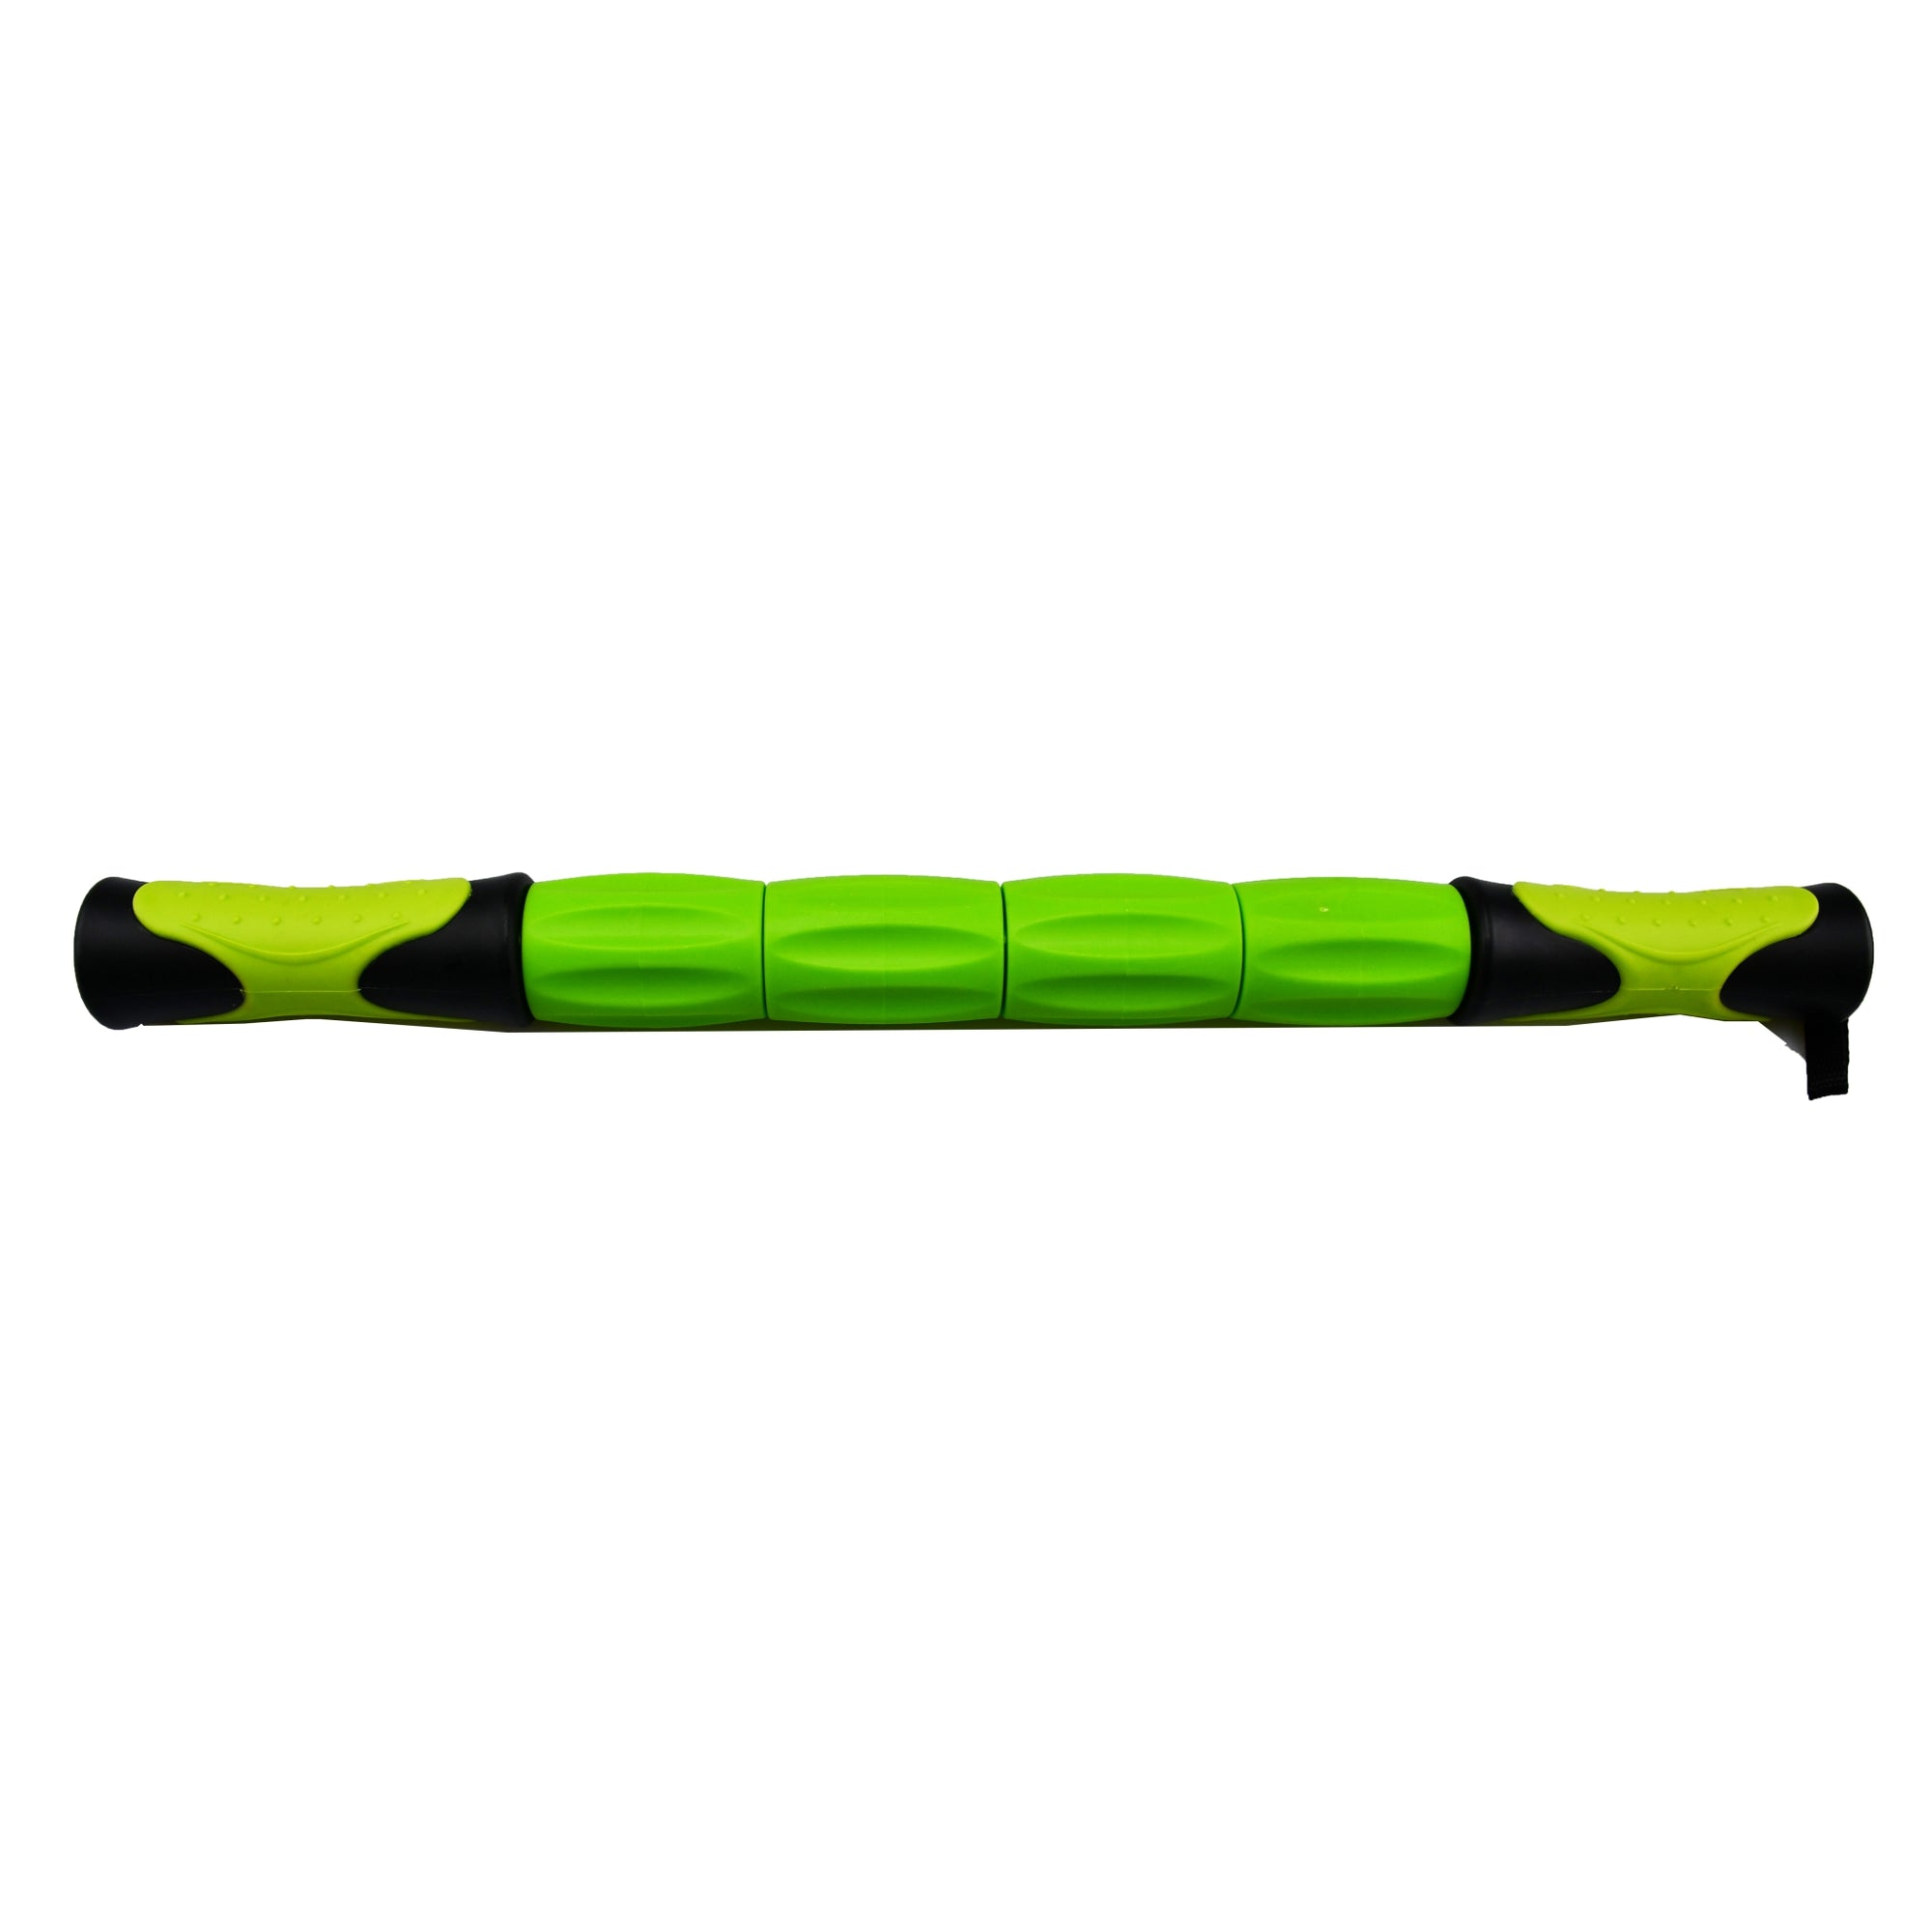 UFE MAssage Stick with green and black easy grip handles, and 4 independent green rollers in the middle of the stick